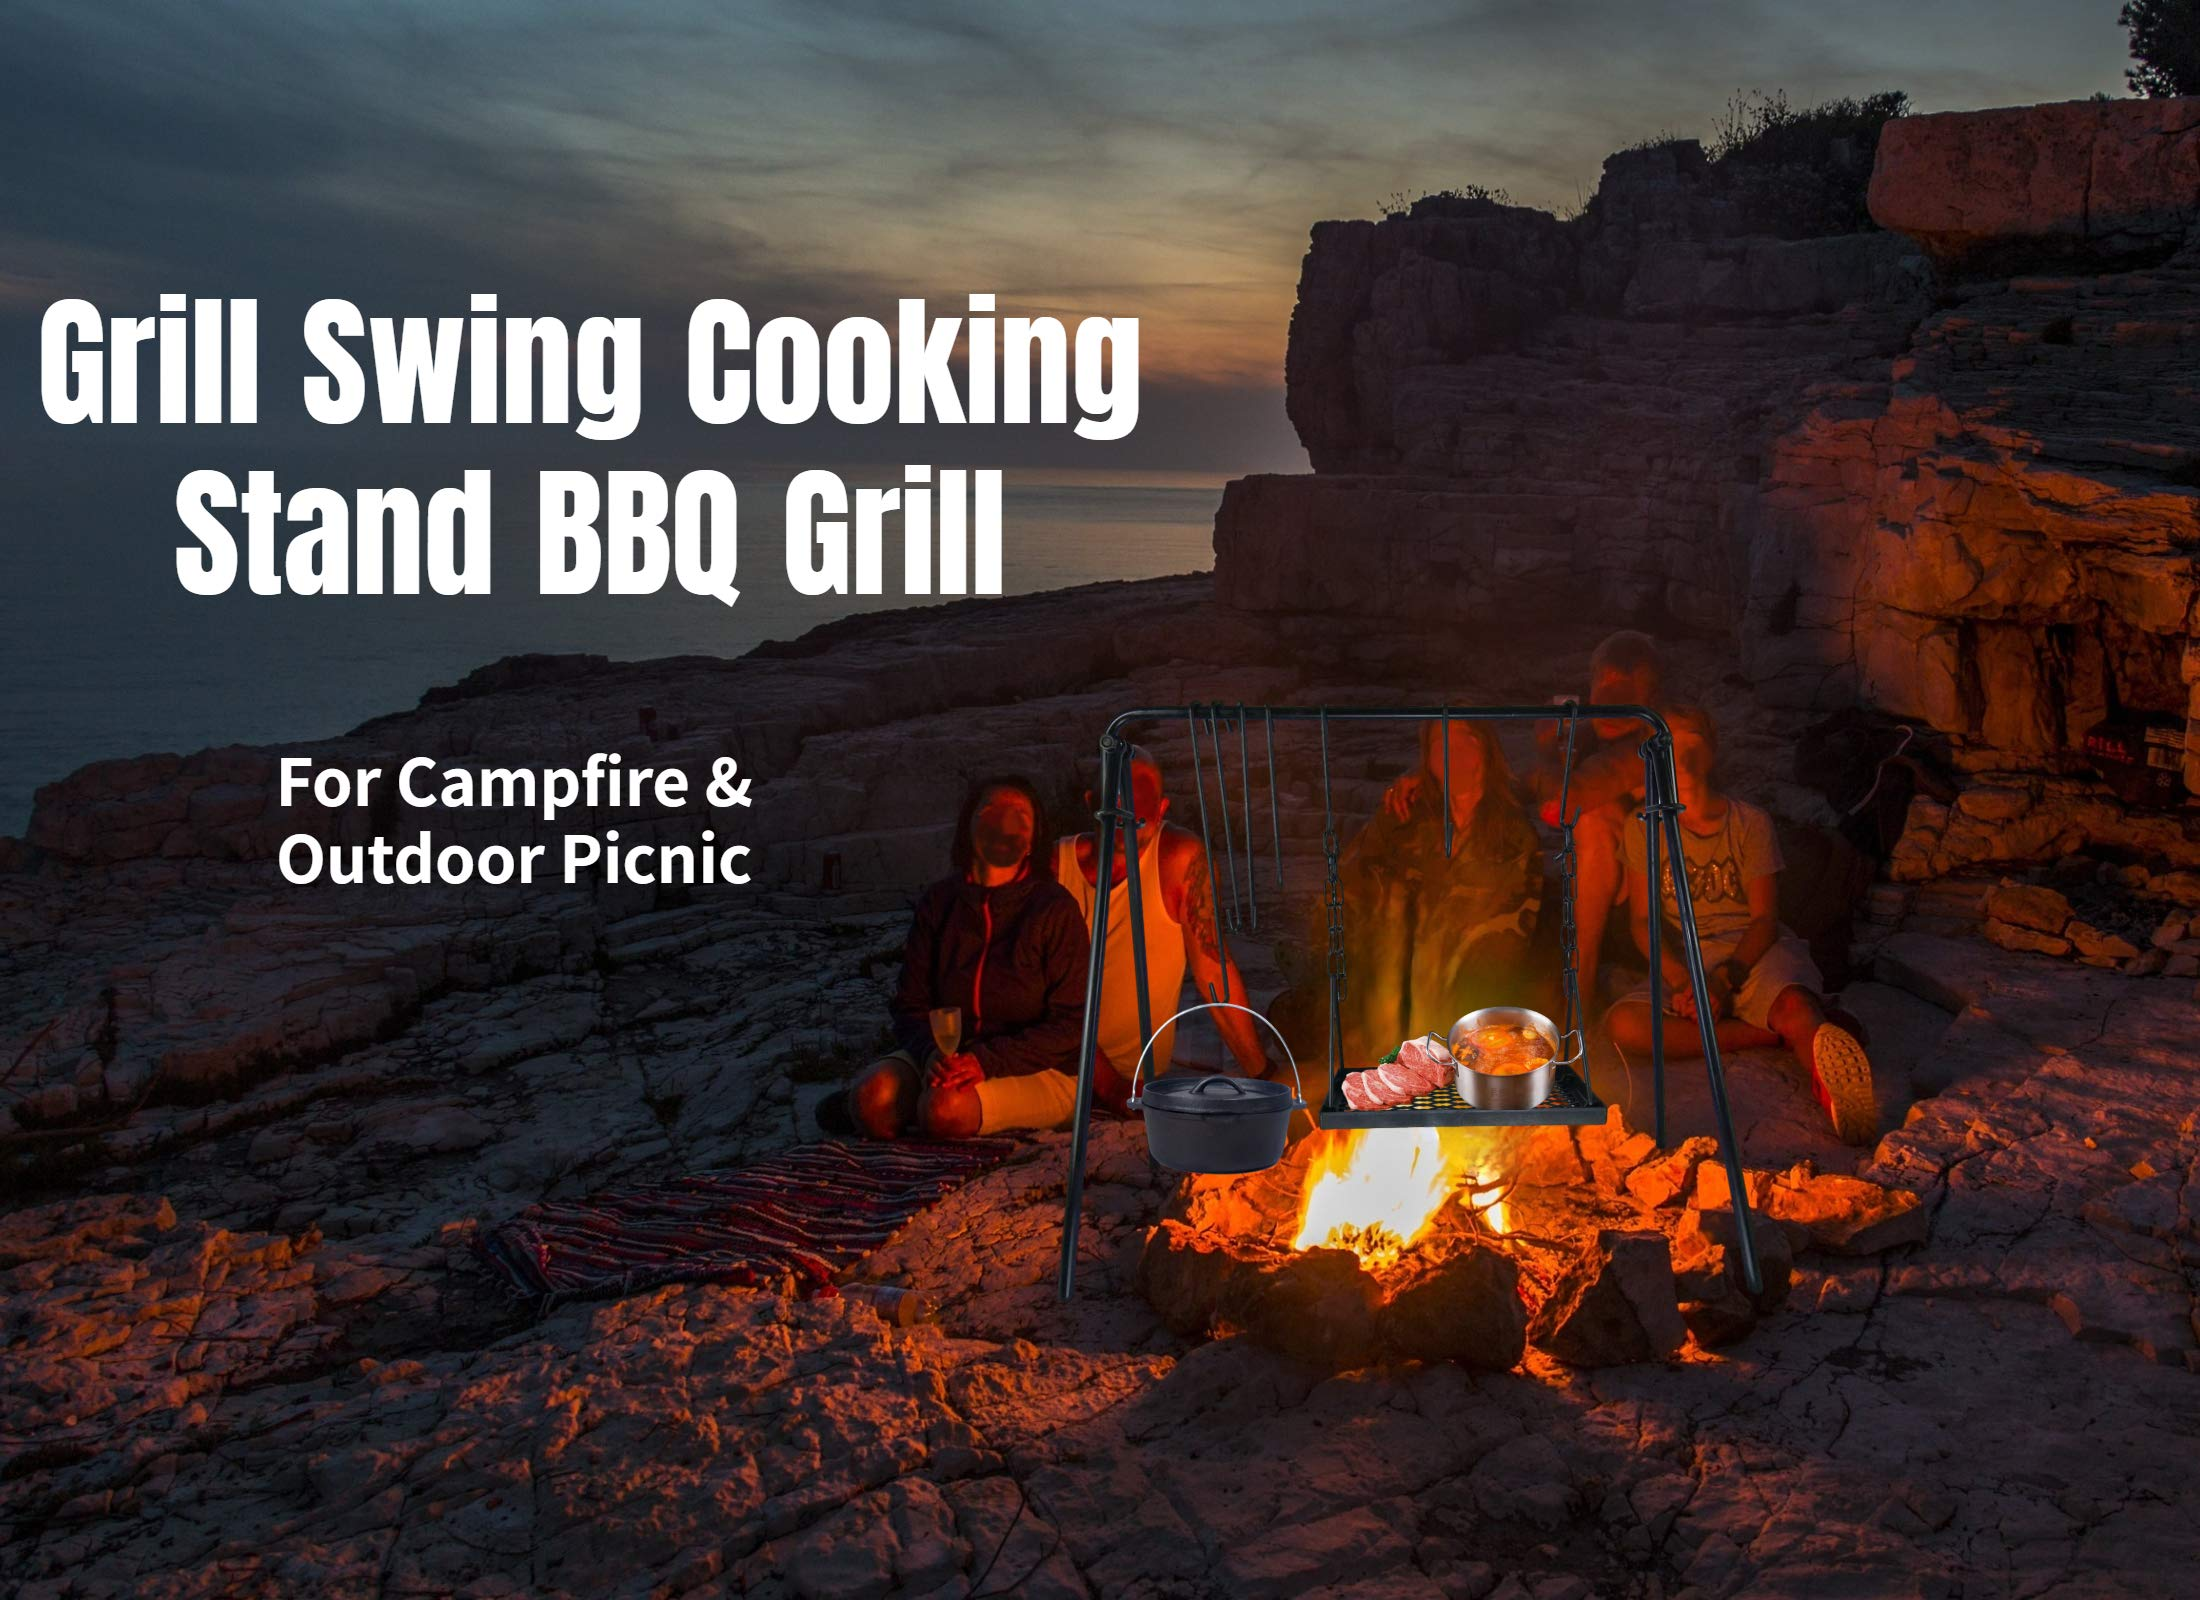 Details about  /Marada Grill Swing Cooking Stand BBQ Grill for Campfire /& Outdoor Picnic Cook...